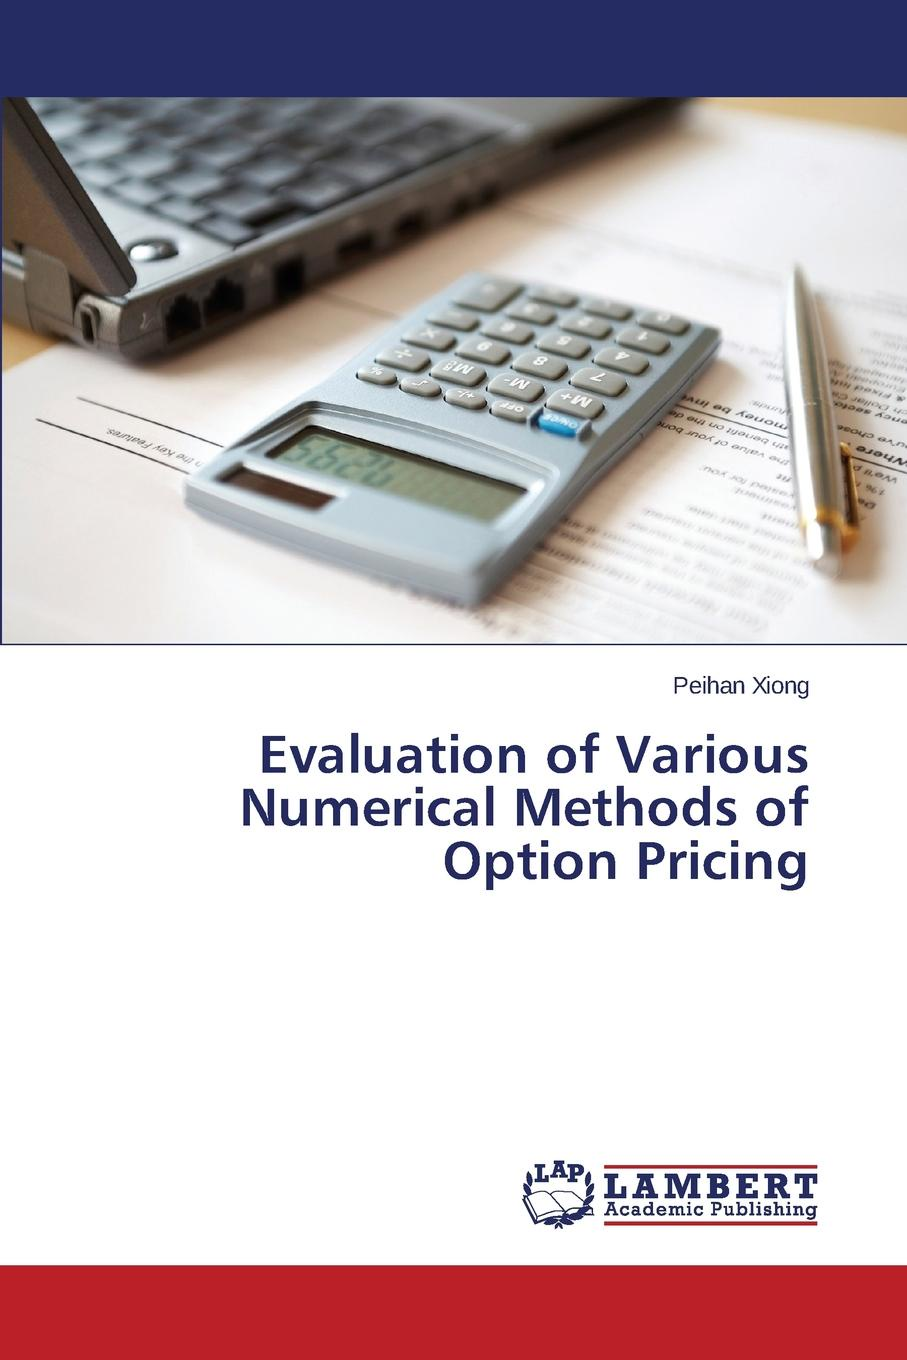 Xiong Peihan Evaluation of Various Numerical Methods of Option Pricing barrow tzs1 a02 yklzs1 t01 g1 4 white black silver gold acrylic water cooling plug coins can be used to twist the